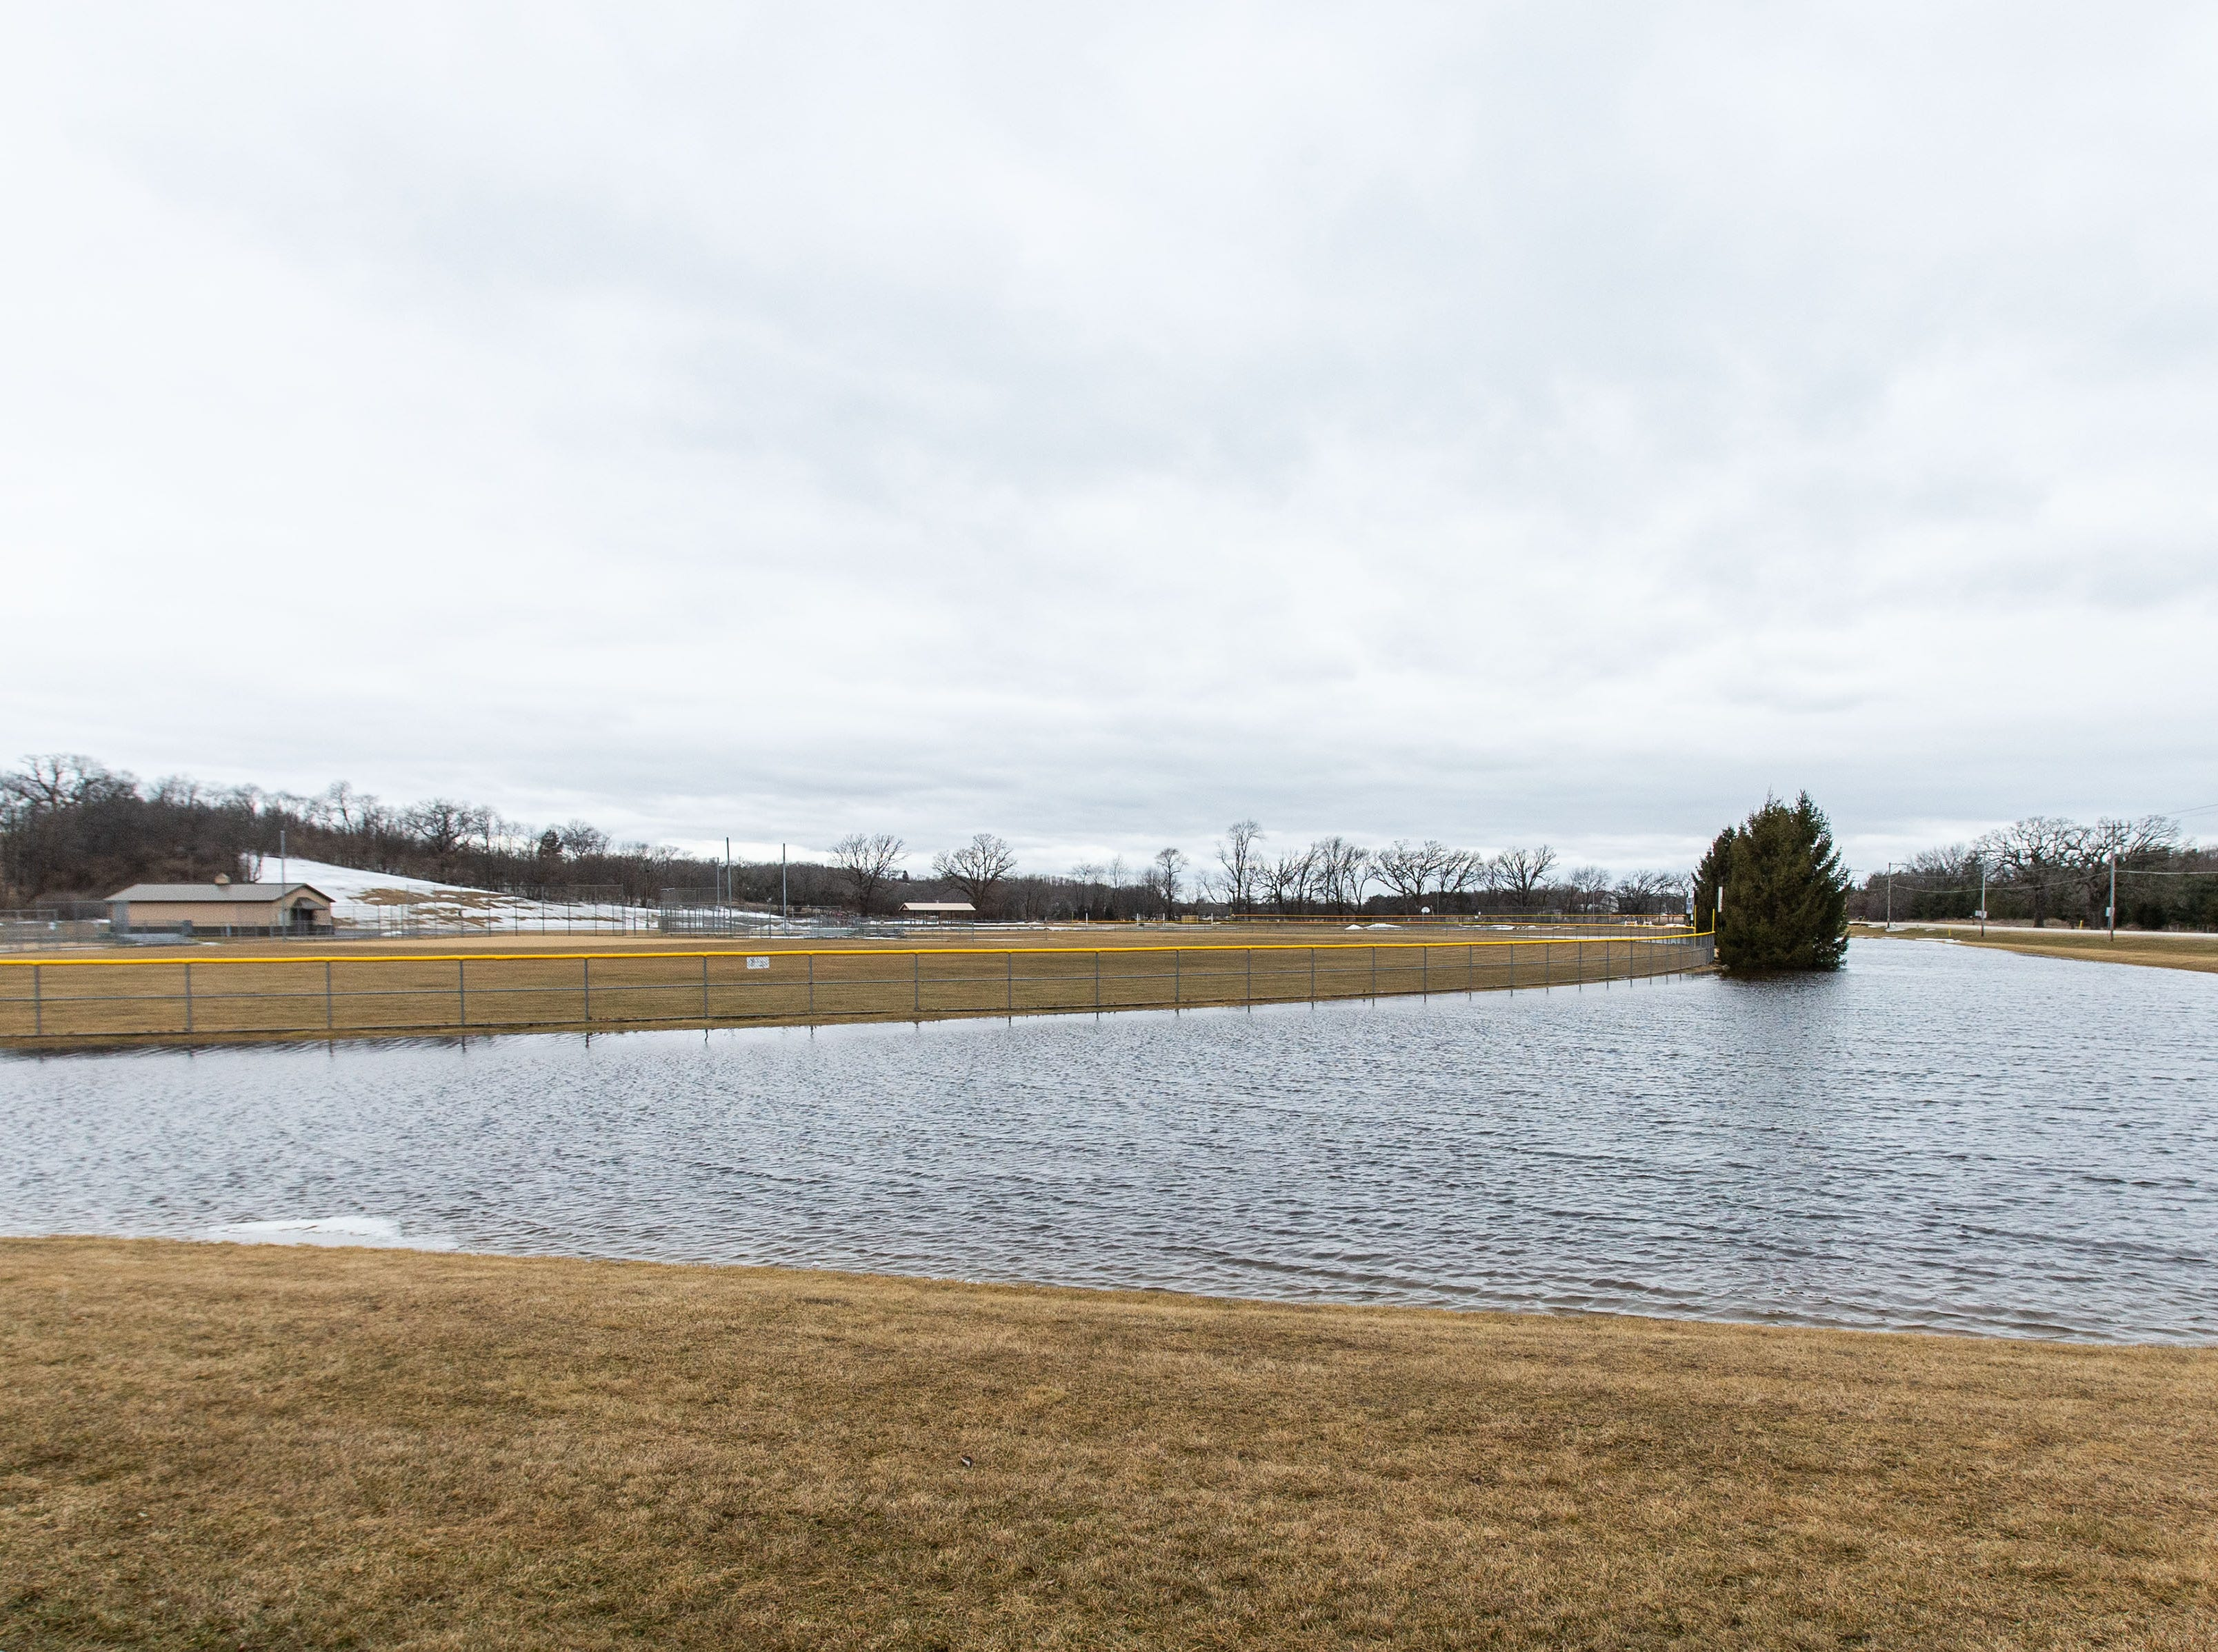 Flood water surrounds the athletic fields at Lauren Park in Mukwonago on Friday, March 15, 2019. Spring-like temperatures caused flooding across both Washington and Waukesha counties.